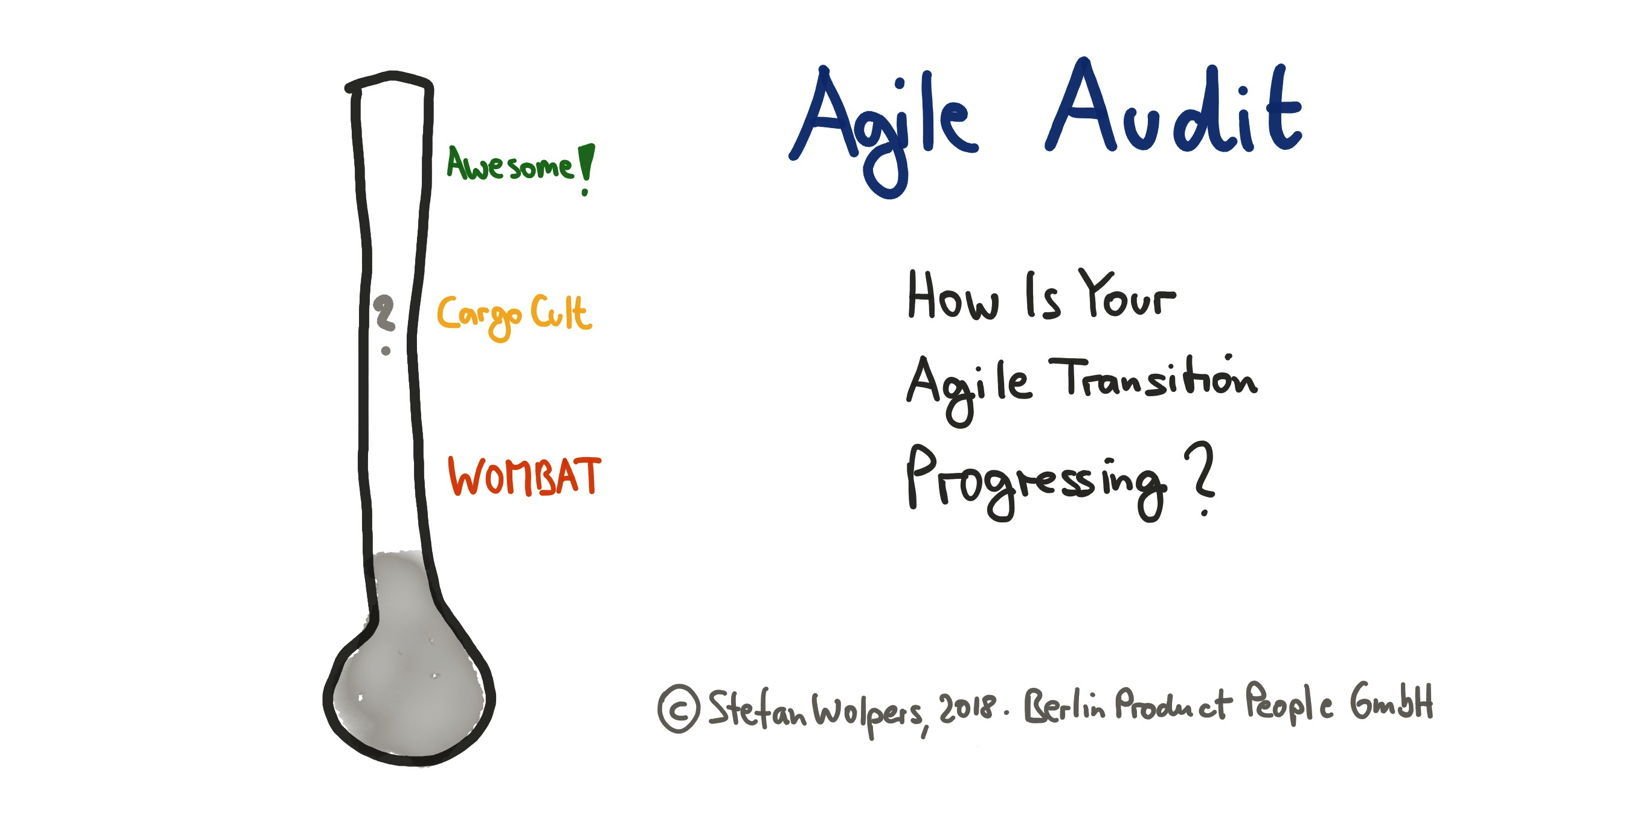 Agile Audit — Is Your Agile Tranformation Progressing?